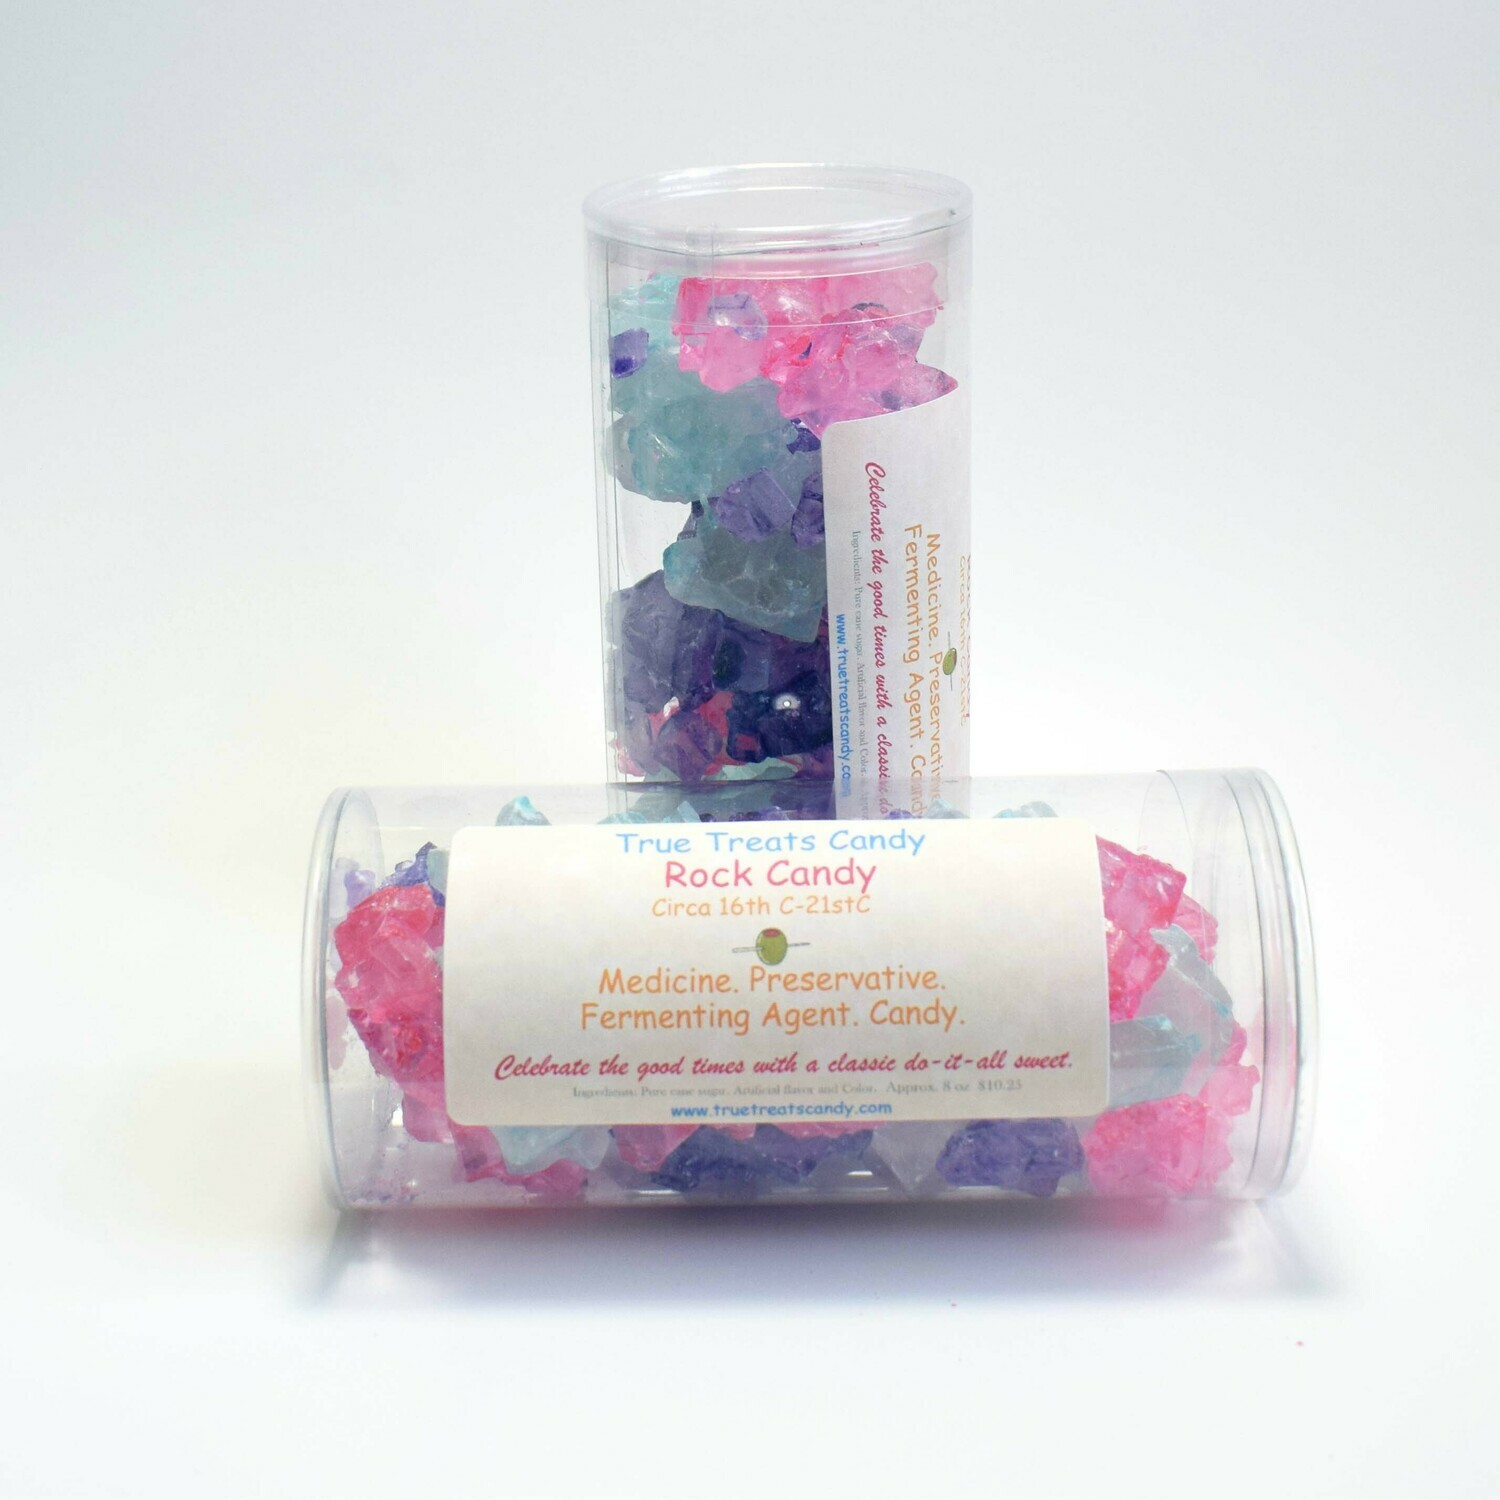 Rock Candy Mix in Capsule